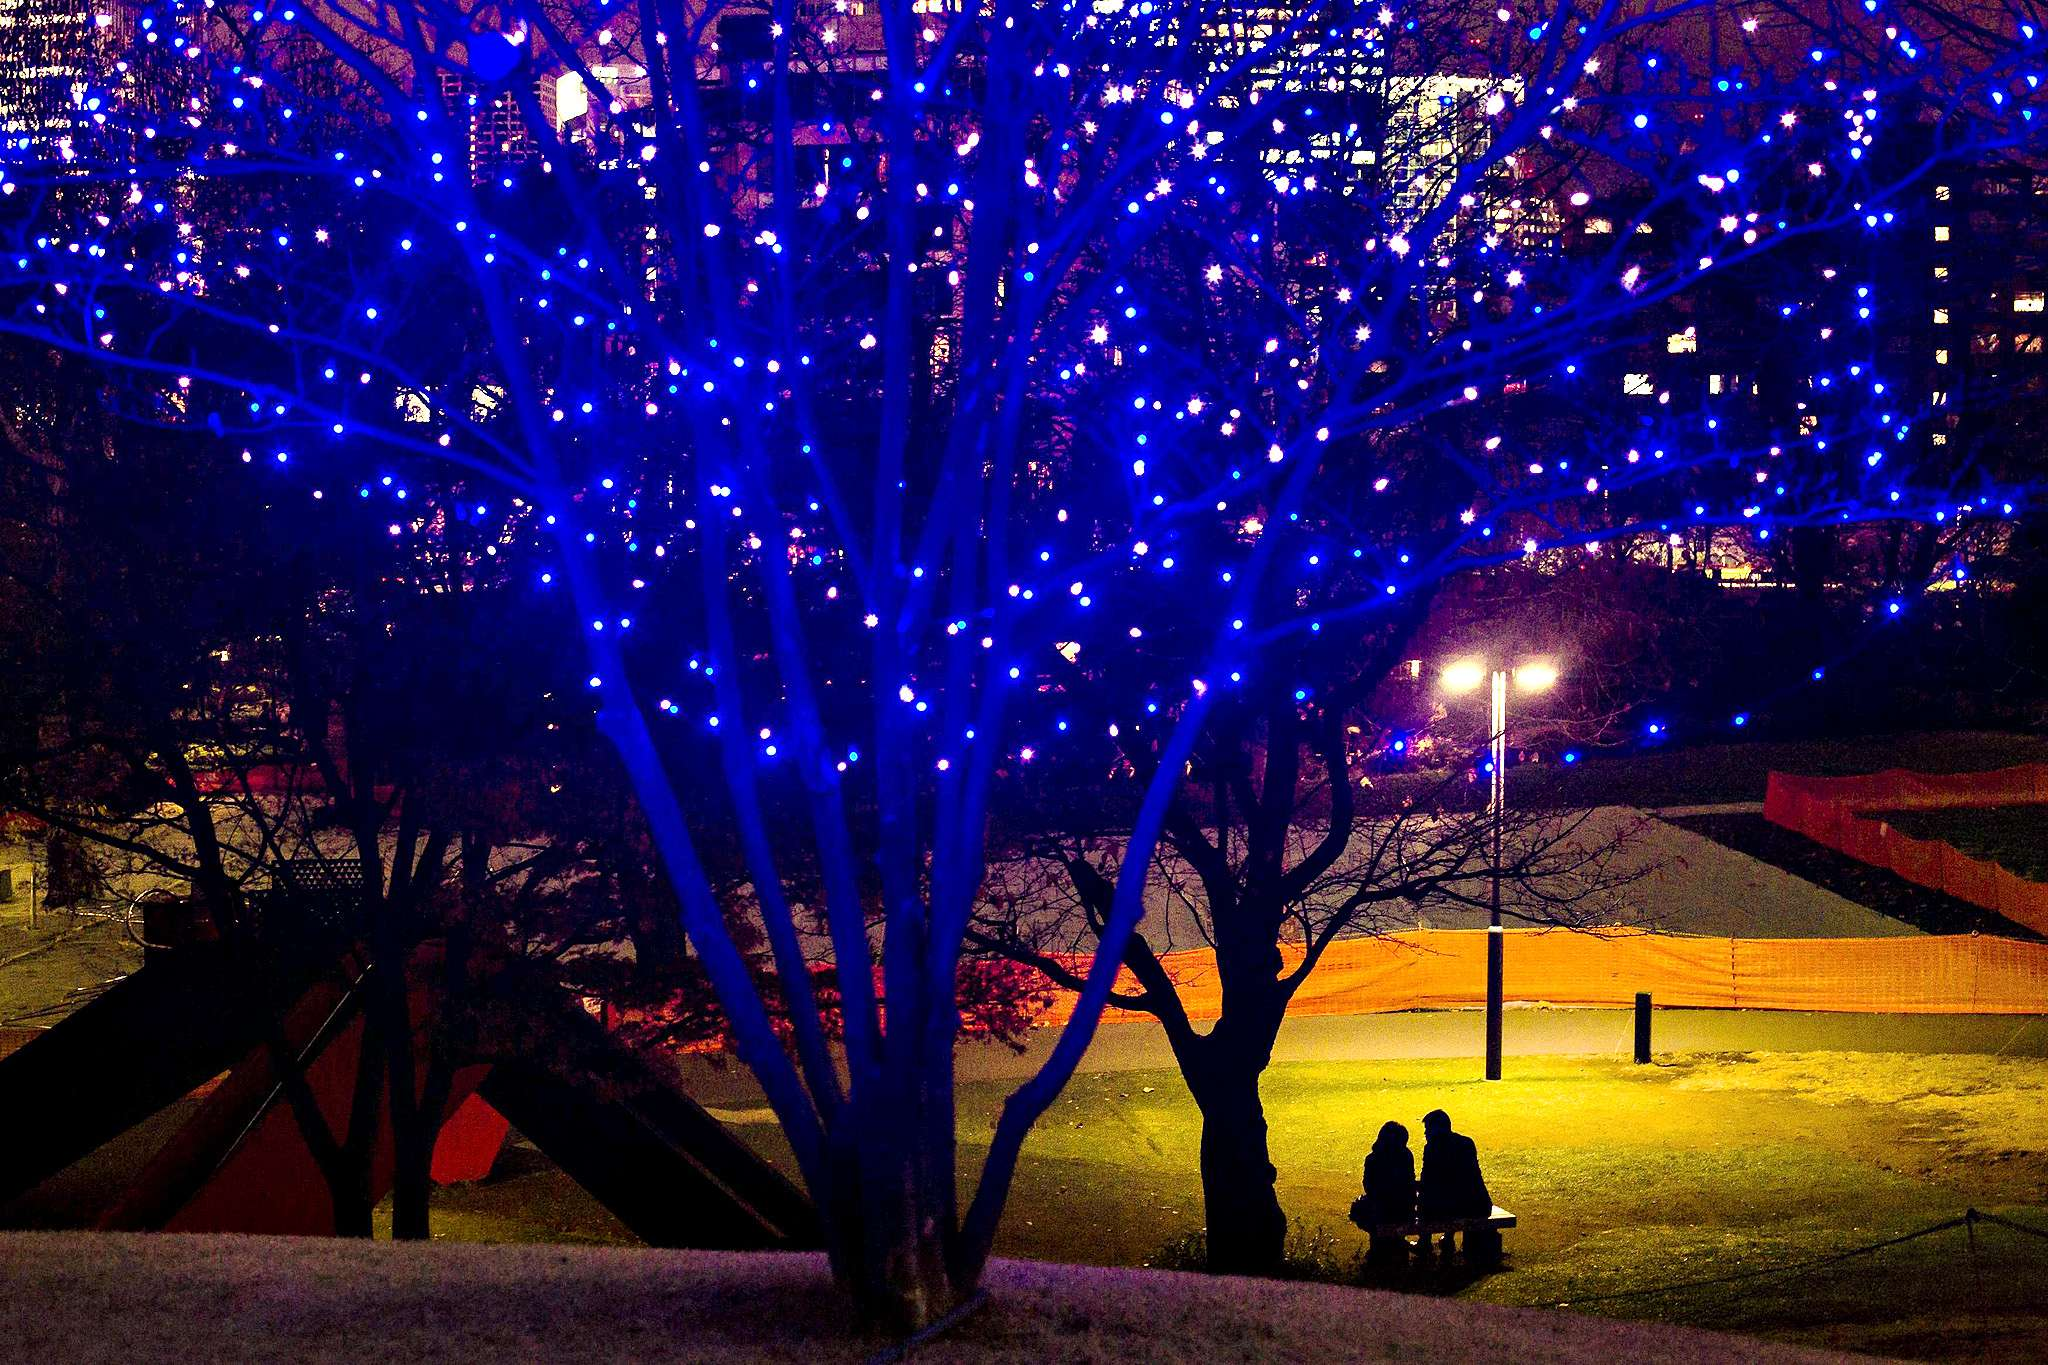 Couple sits under a street lamp in a park near Christmas lights